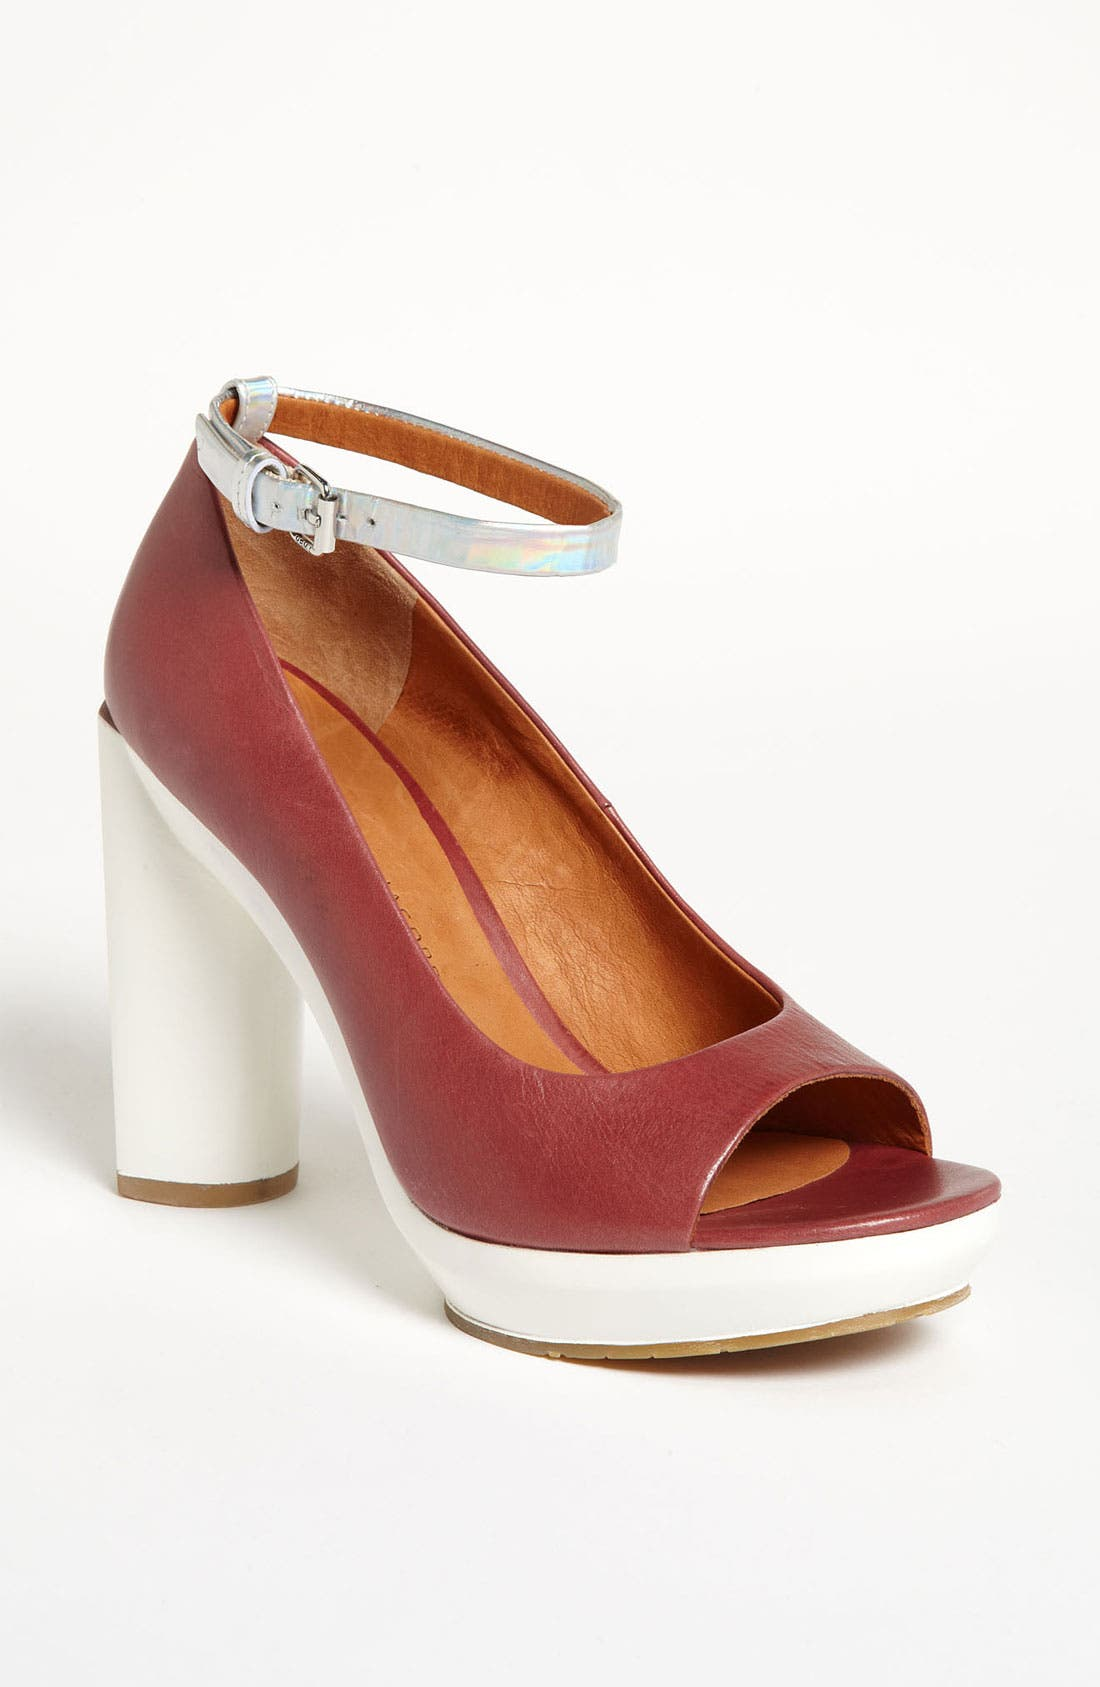 Main Image - MARC BY MARC JACOBS Platform Sandal